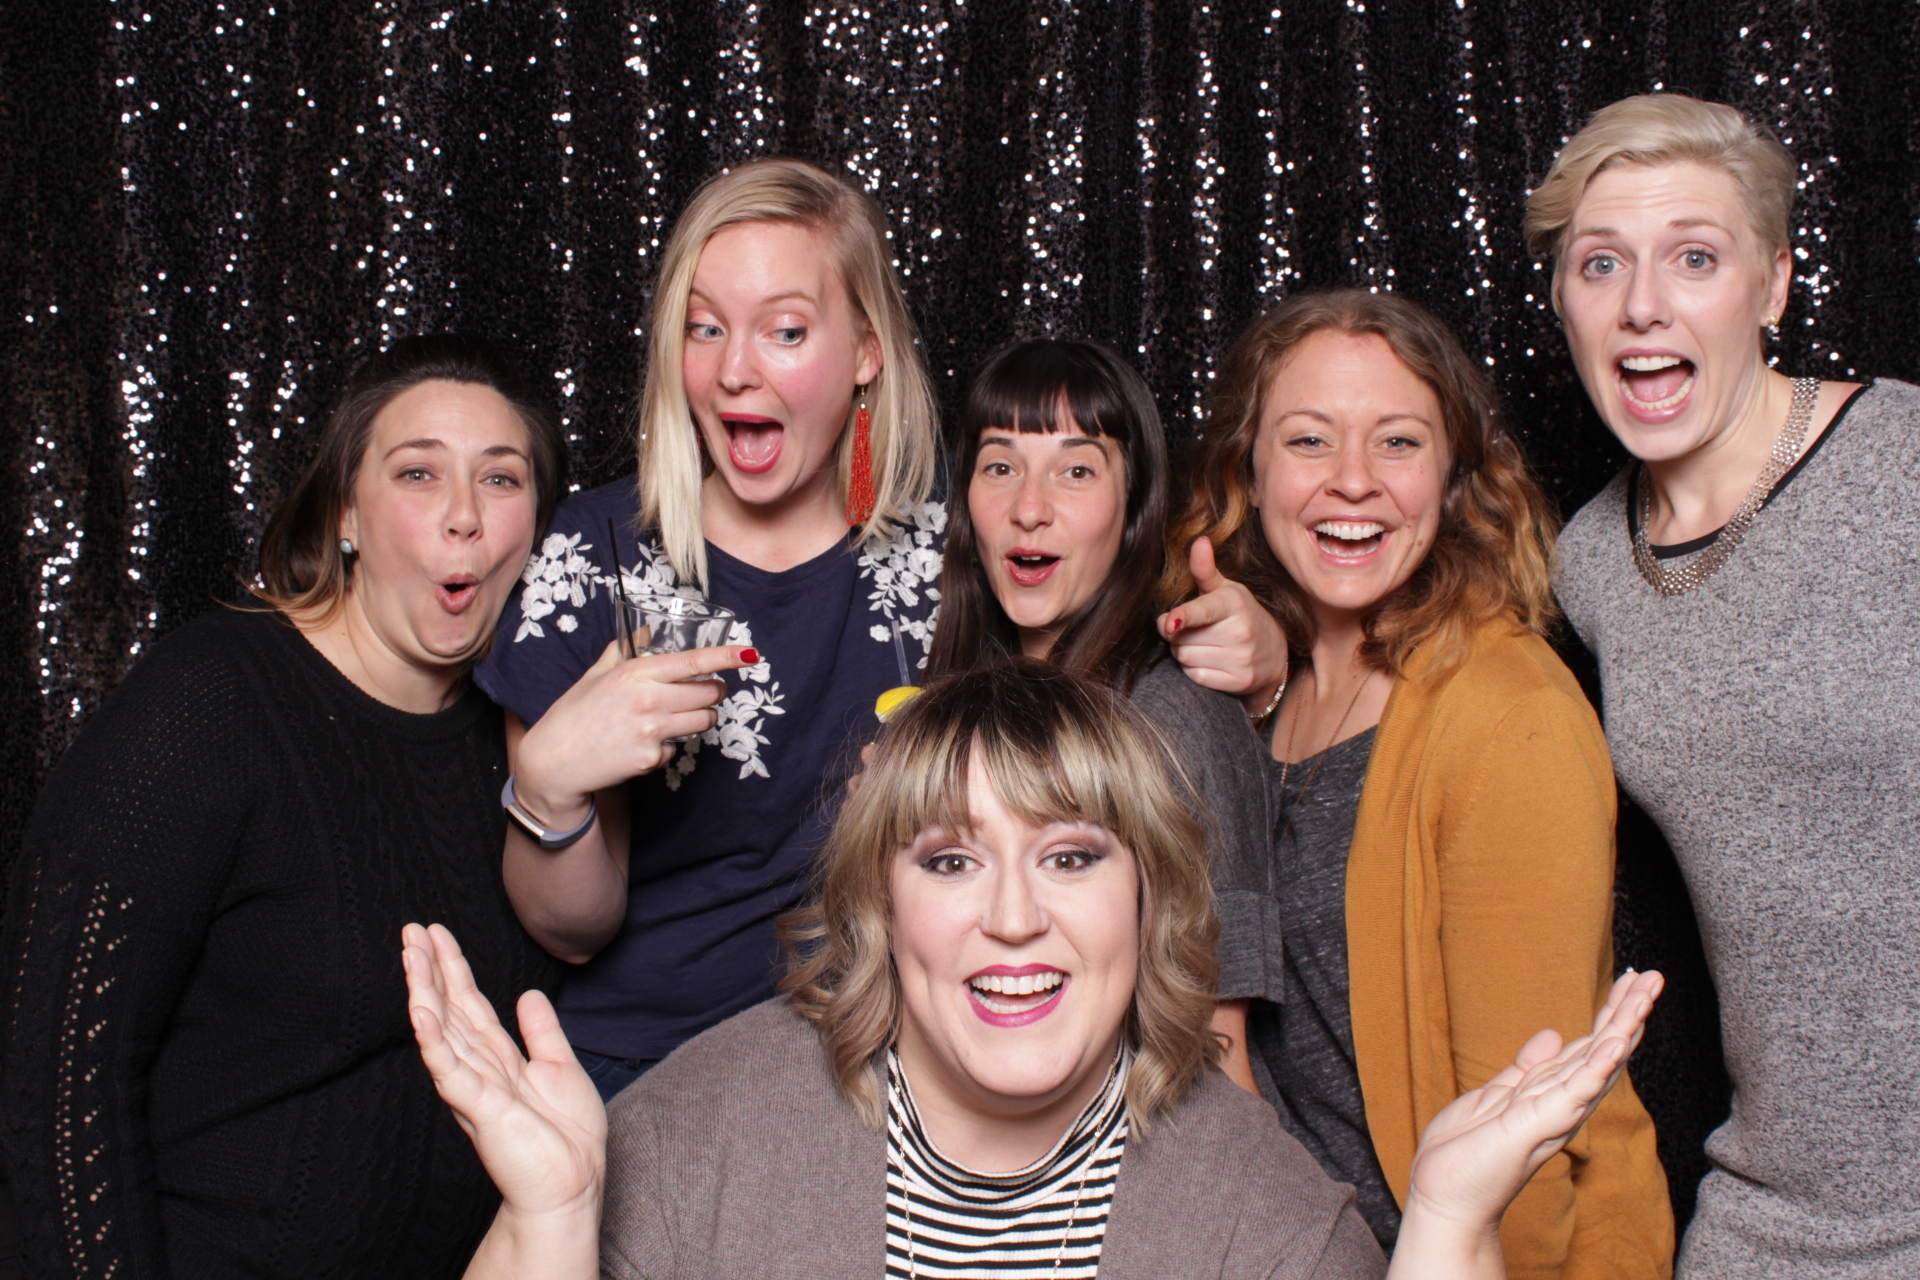 Minneapolis_birthday_party_photo_booth_rentals (3).jpg